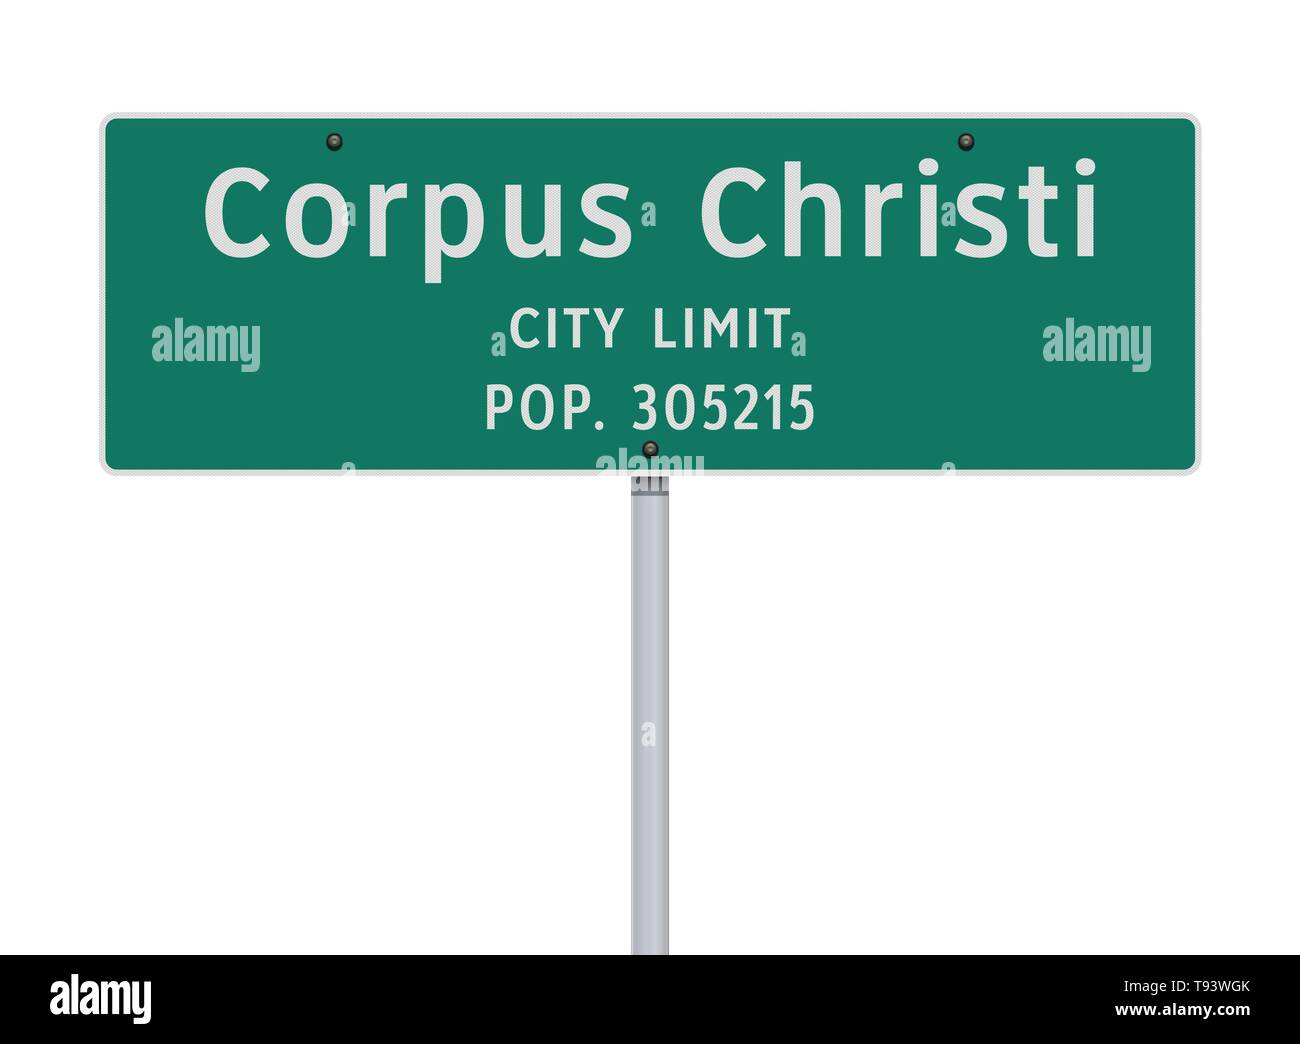 Vector illustration of the Corpus Christi City Limit green road sign - Stock Vector